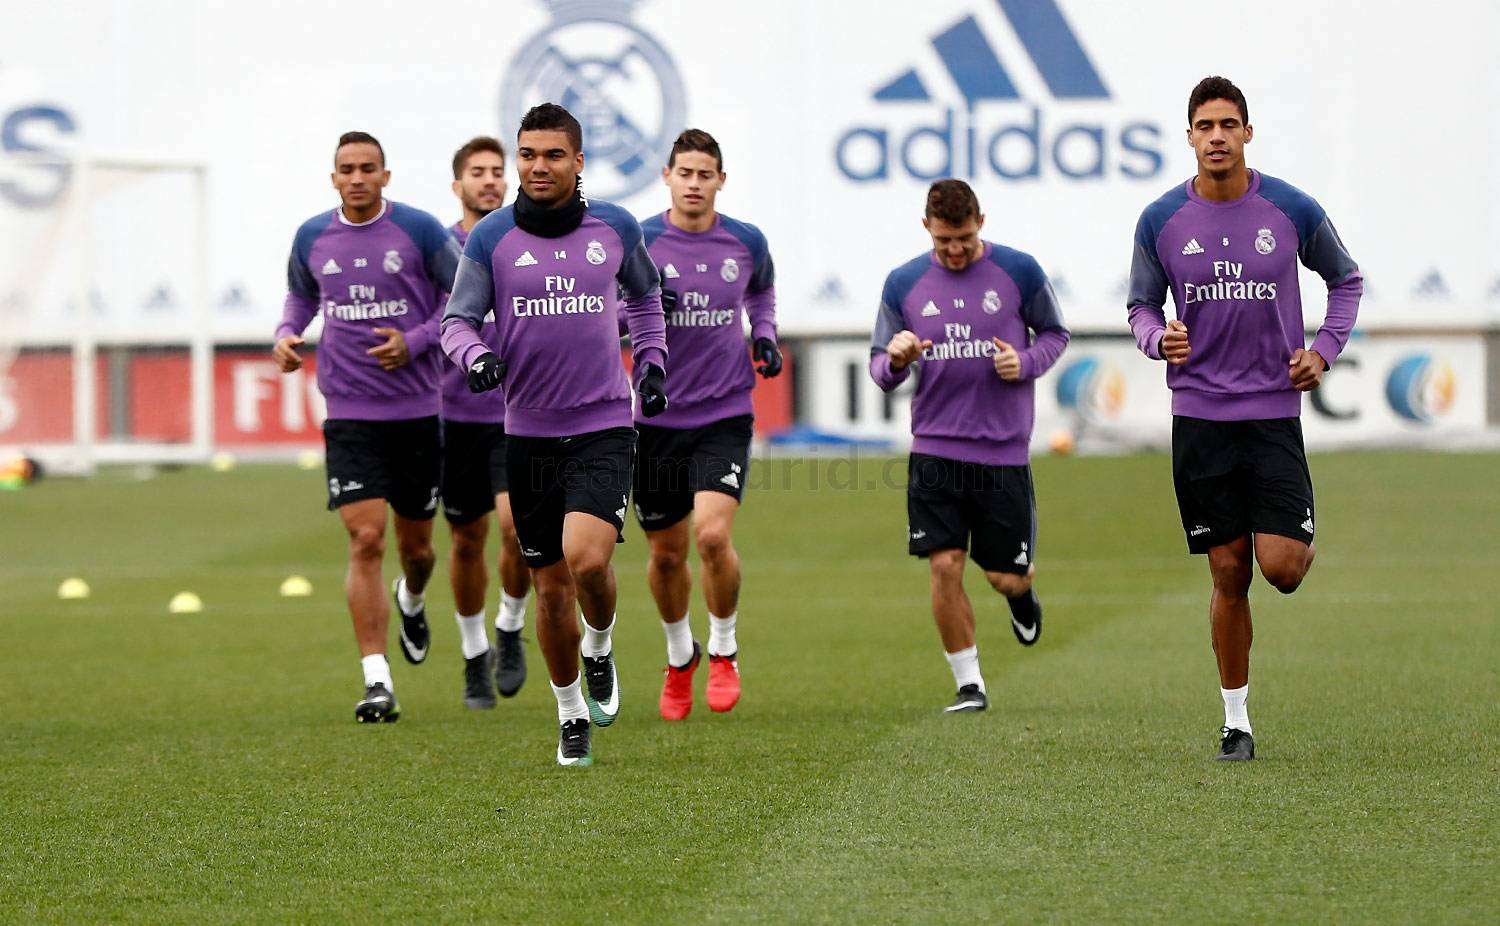 Real Madrid - Entrenamiento del Real Madrid - 09-12-2016